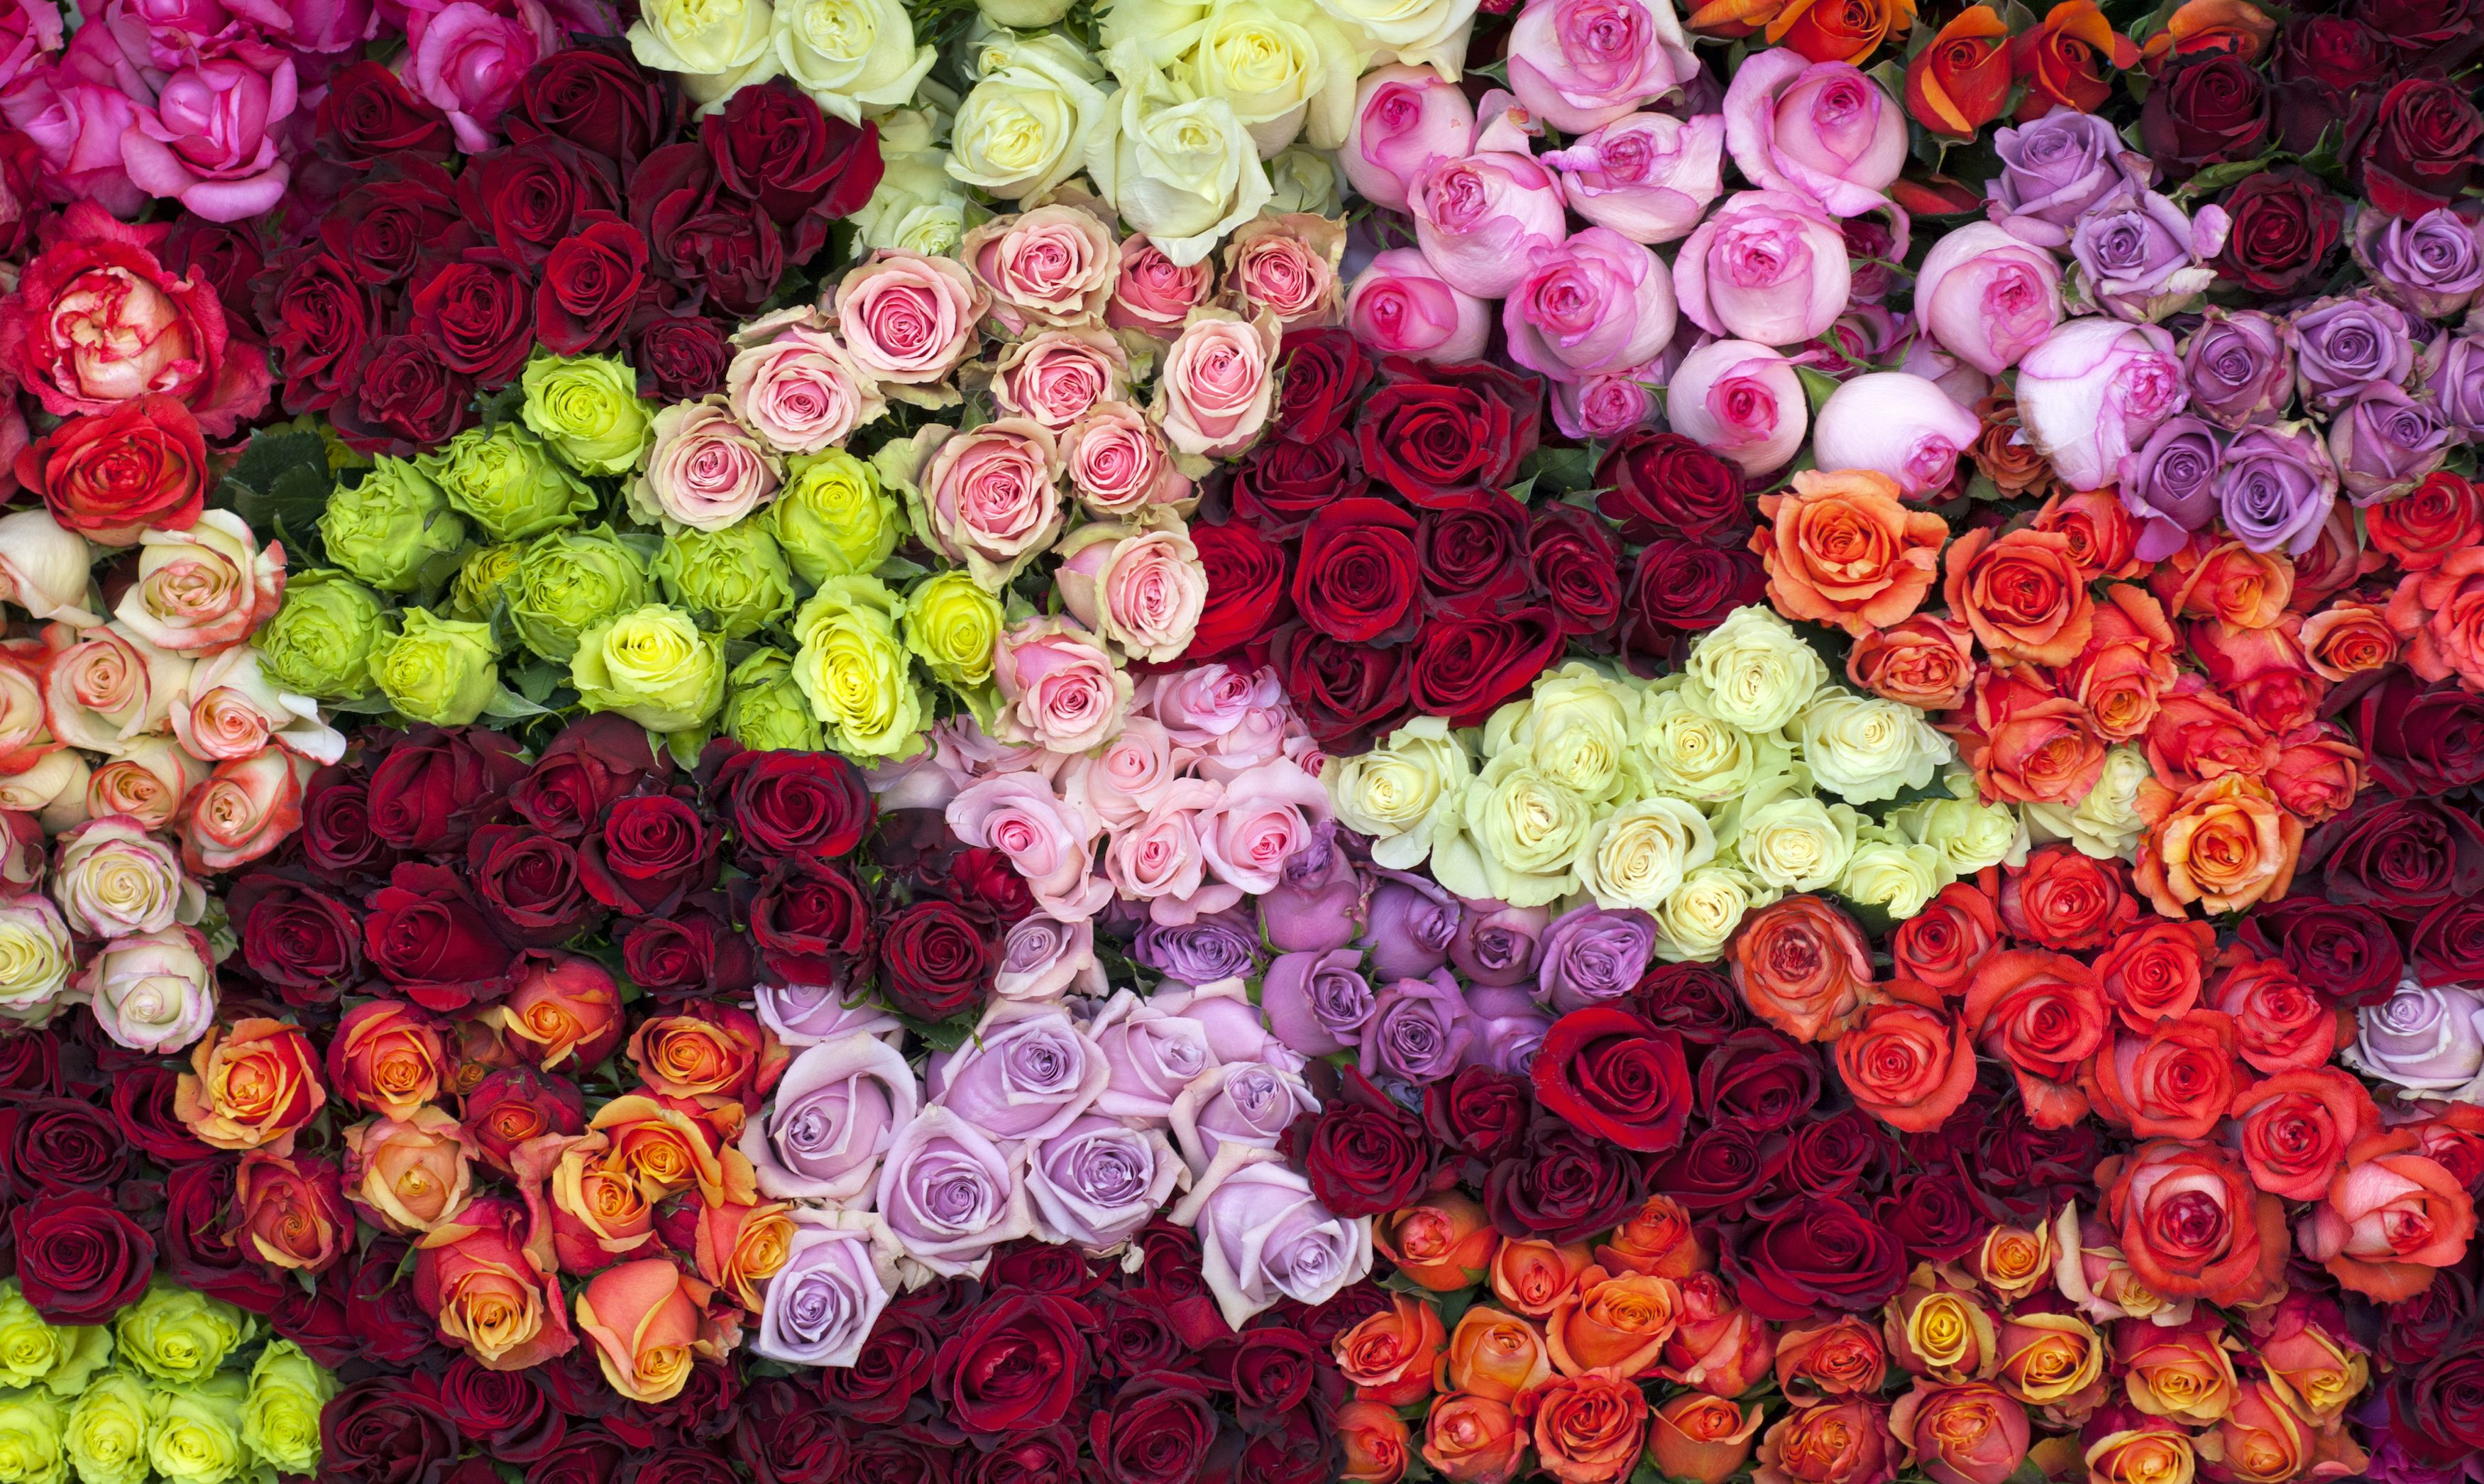 14 rose color meanings what do the colors of roses mean for 14 rose color meanings what do the colors of roses mean for valentines day izmirmasajfo